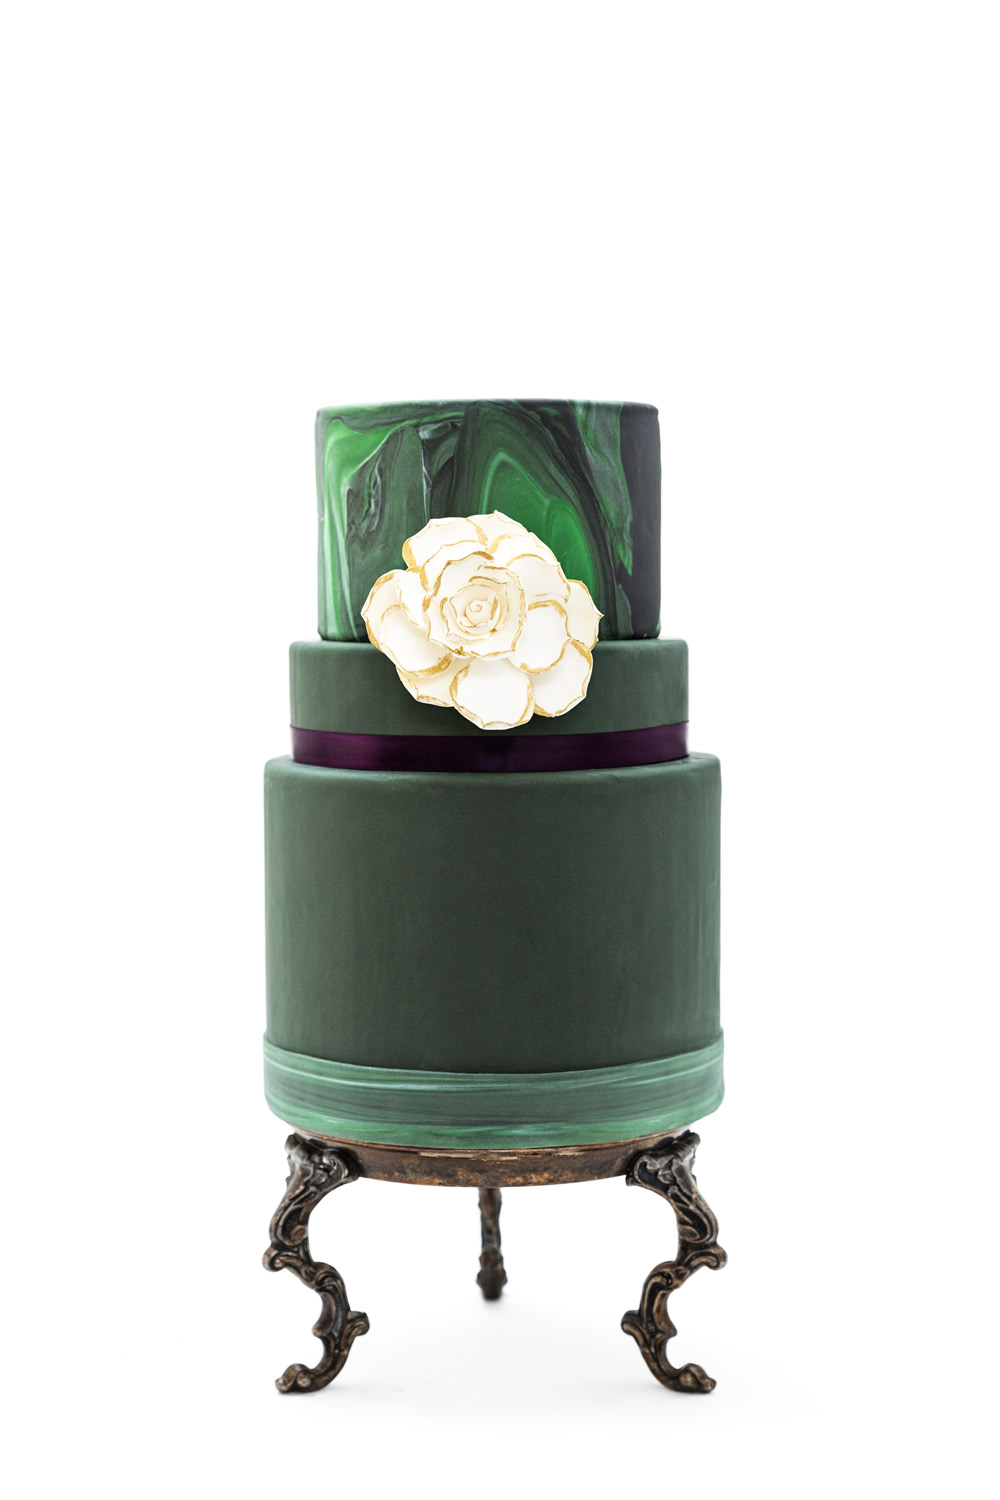 green marble three tier modern wedding cake with white sugar flower by Sweet Cheeks Baking Co in San Diego, #WeddingMinimalismProject by Cavin Elizabeth Photography